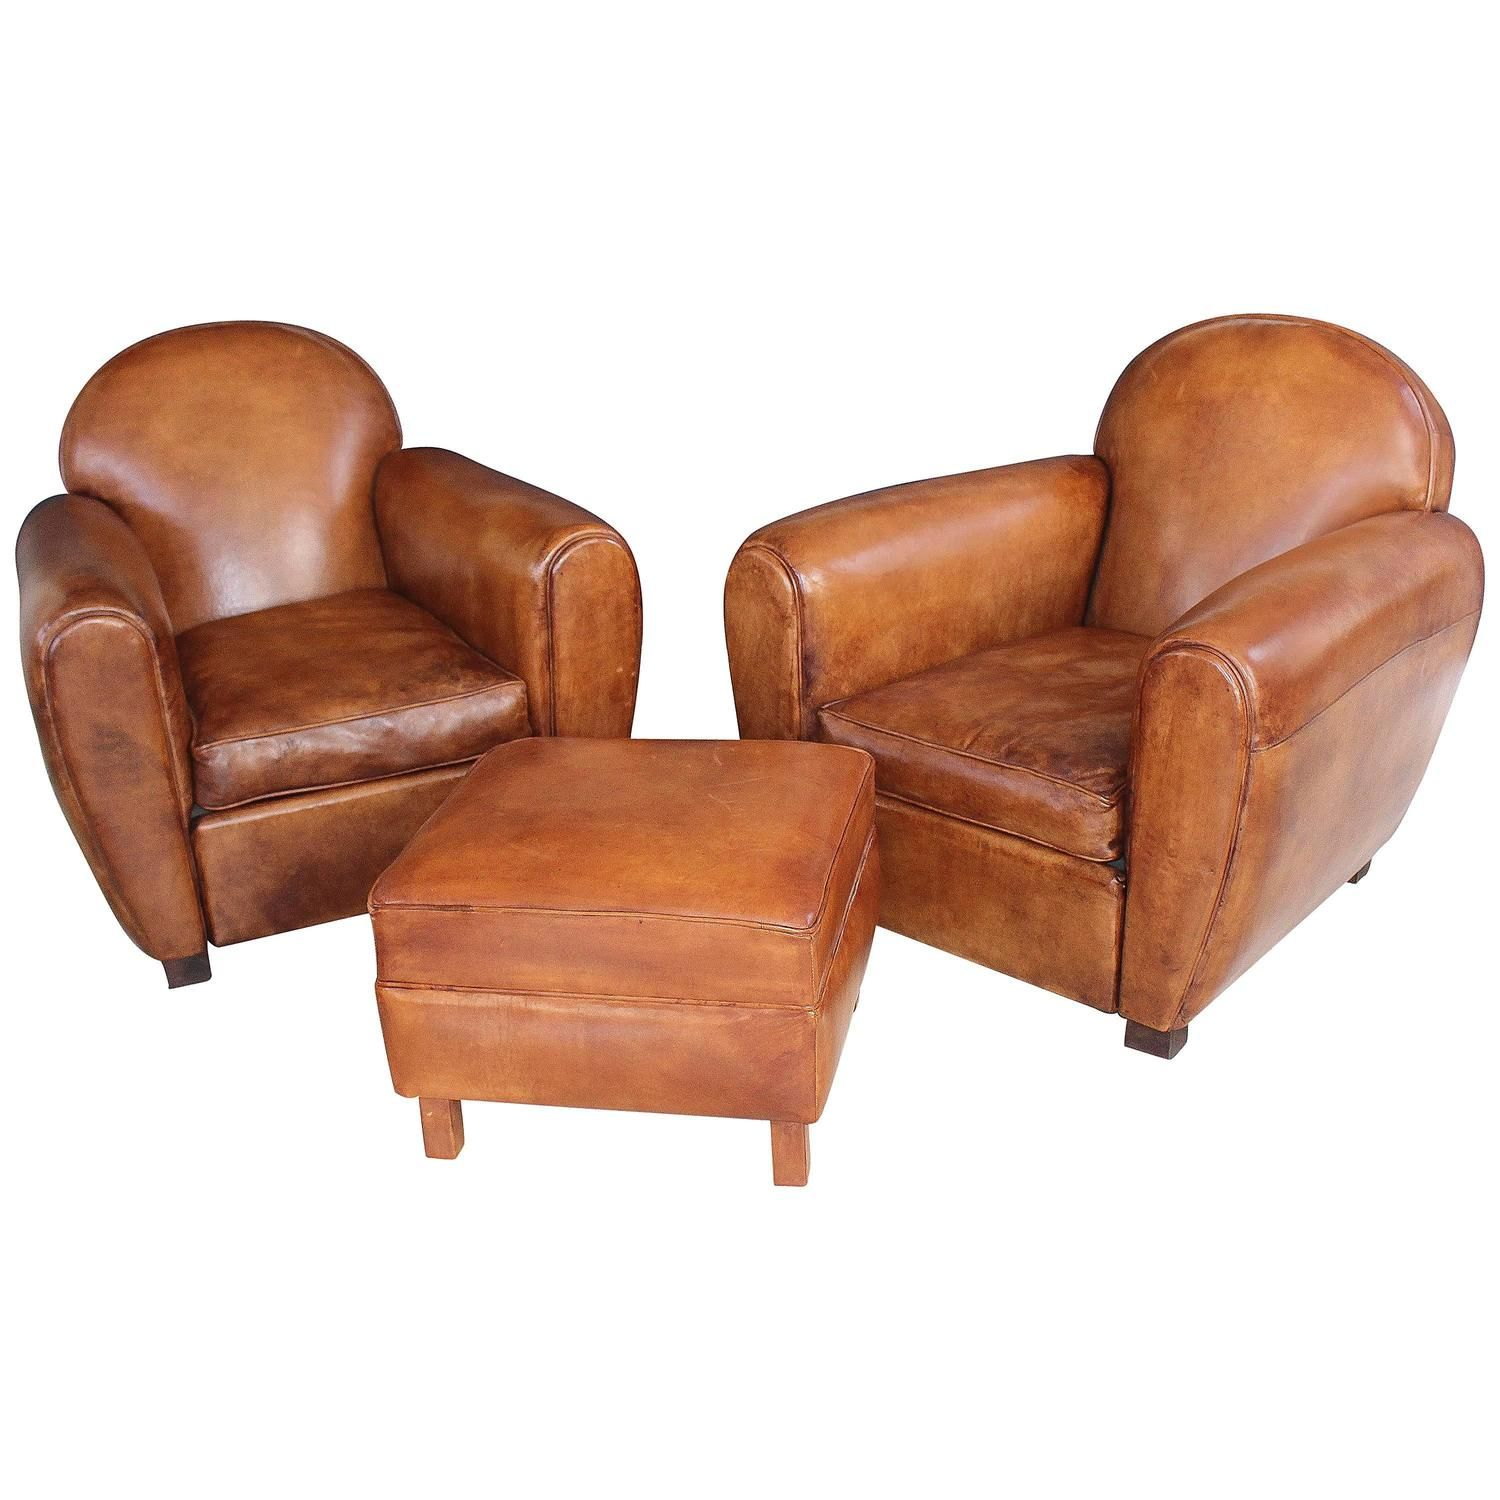 Enjoyable Pin By Sylvie Moss On Furnish In 2019 Leather Club Chairs Alphanode Cool Chair Designs And Ideas Alphanodeonline